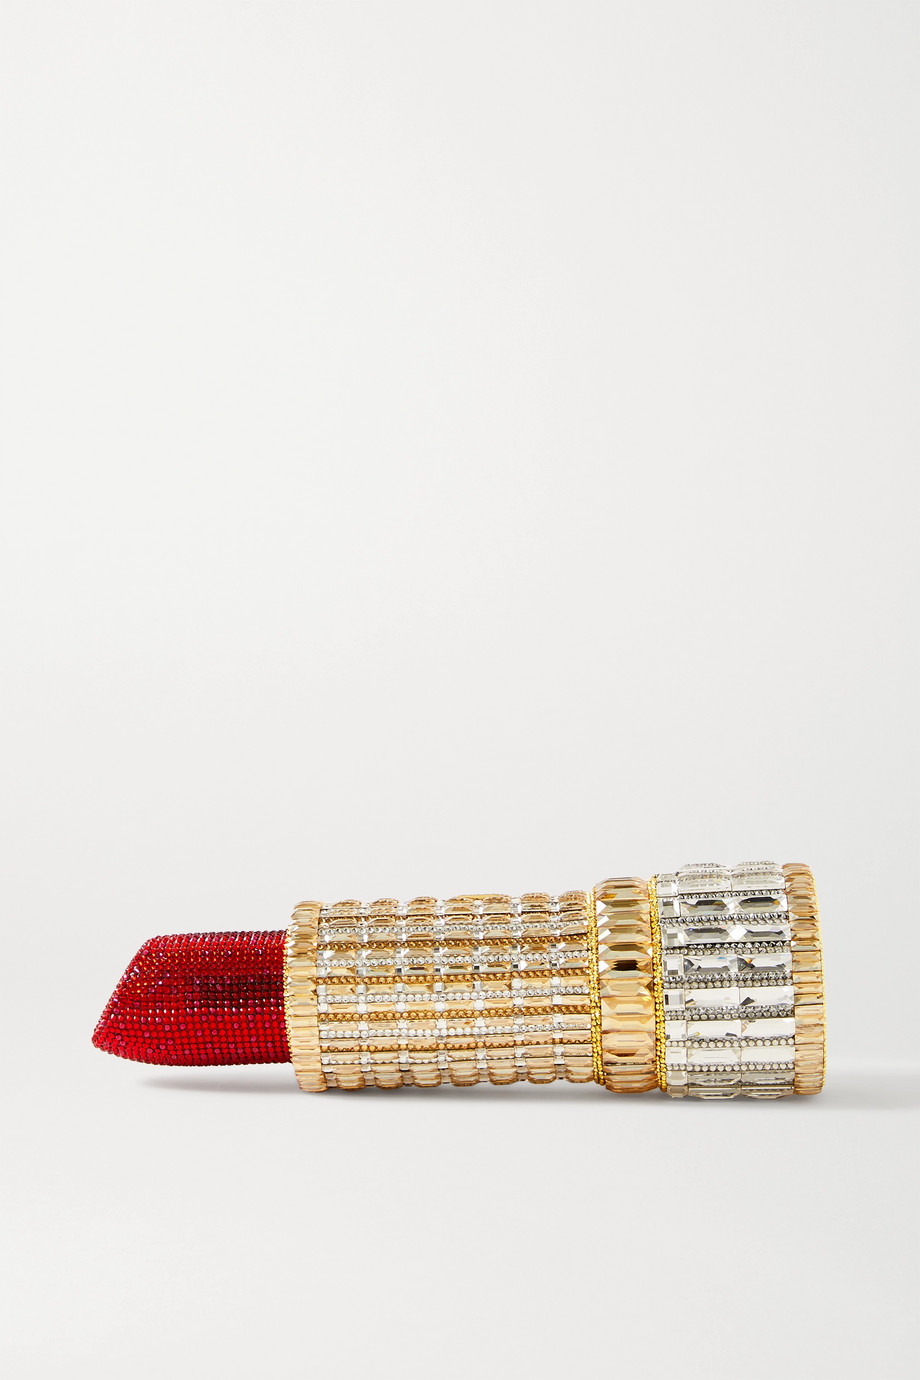 Judith Leiber Couture Lipstick Seductress crystal-embellished gold-tone clutch